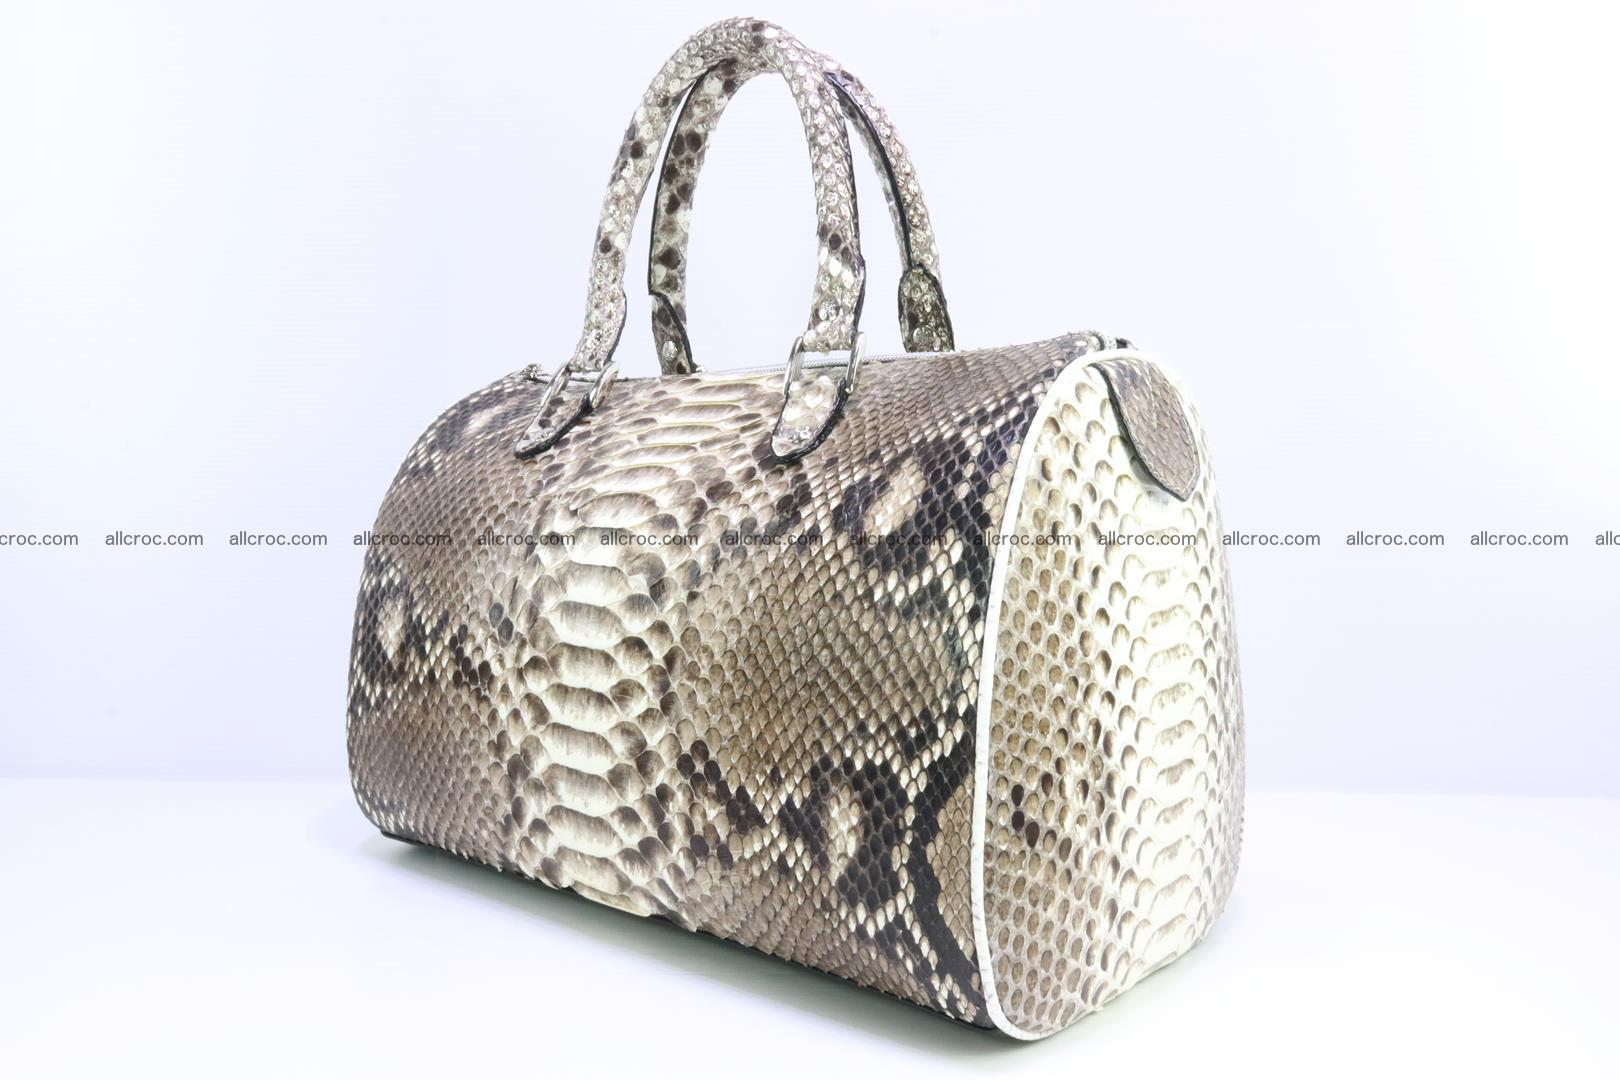 Ladies handbag, valise from genuine python skin 208 Foto 2